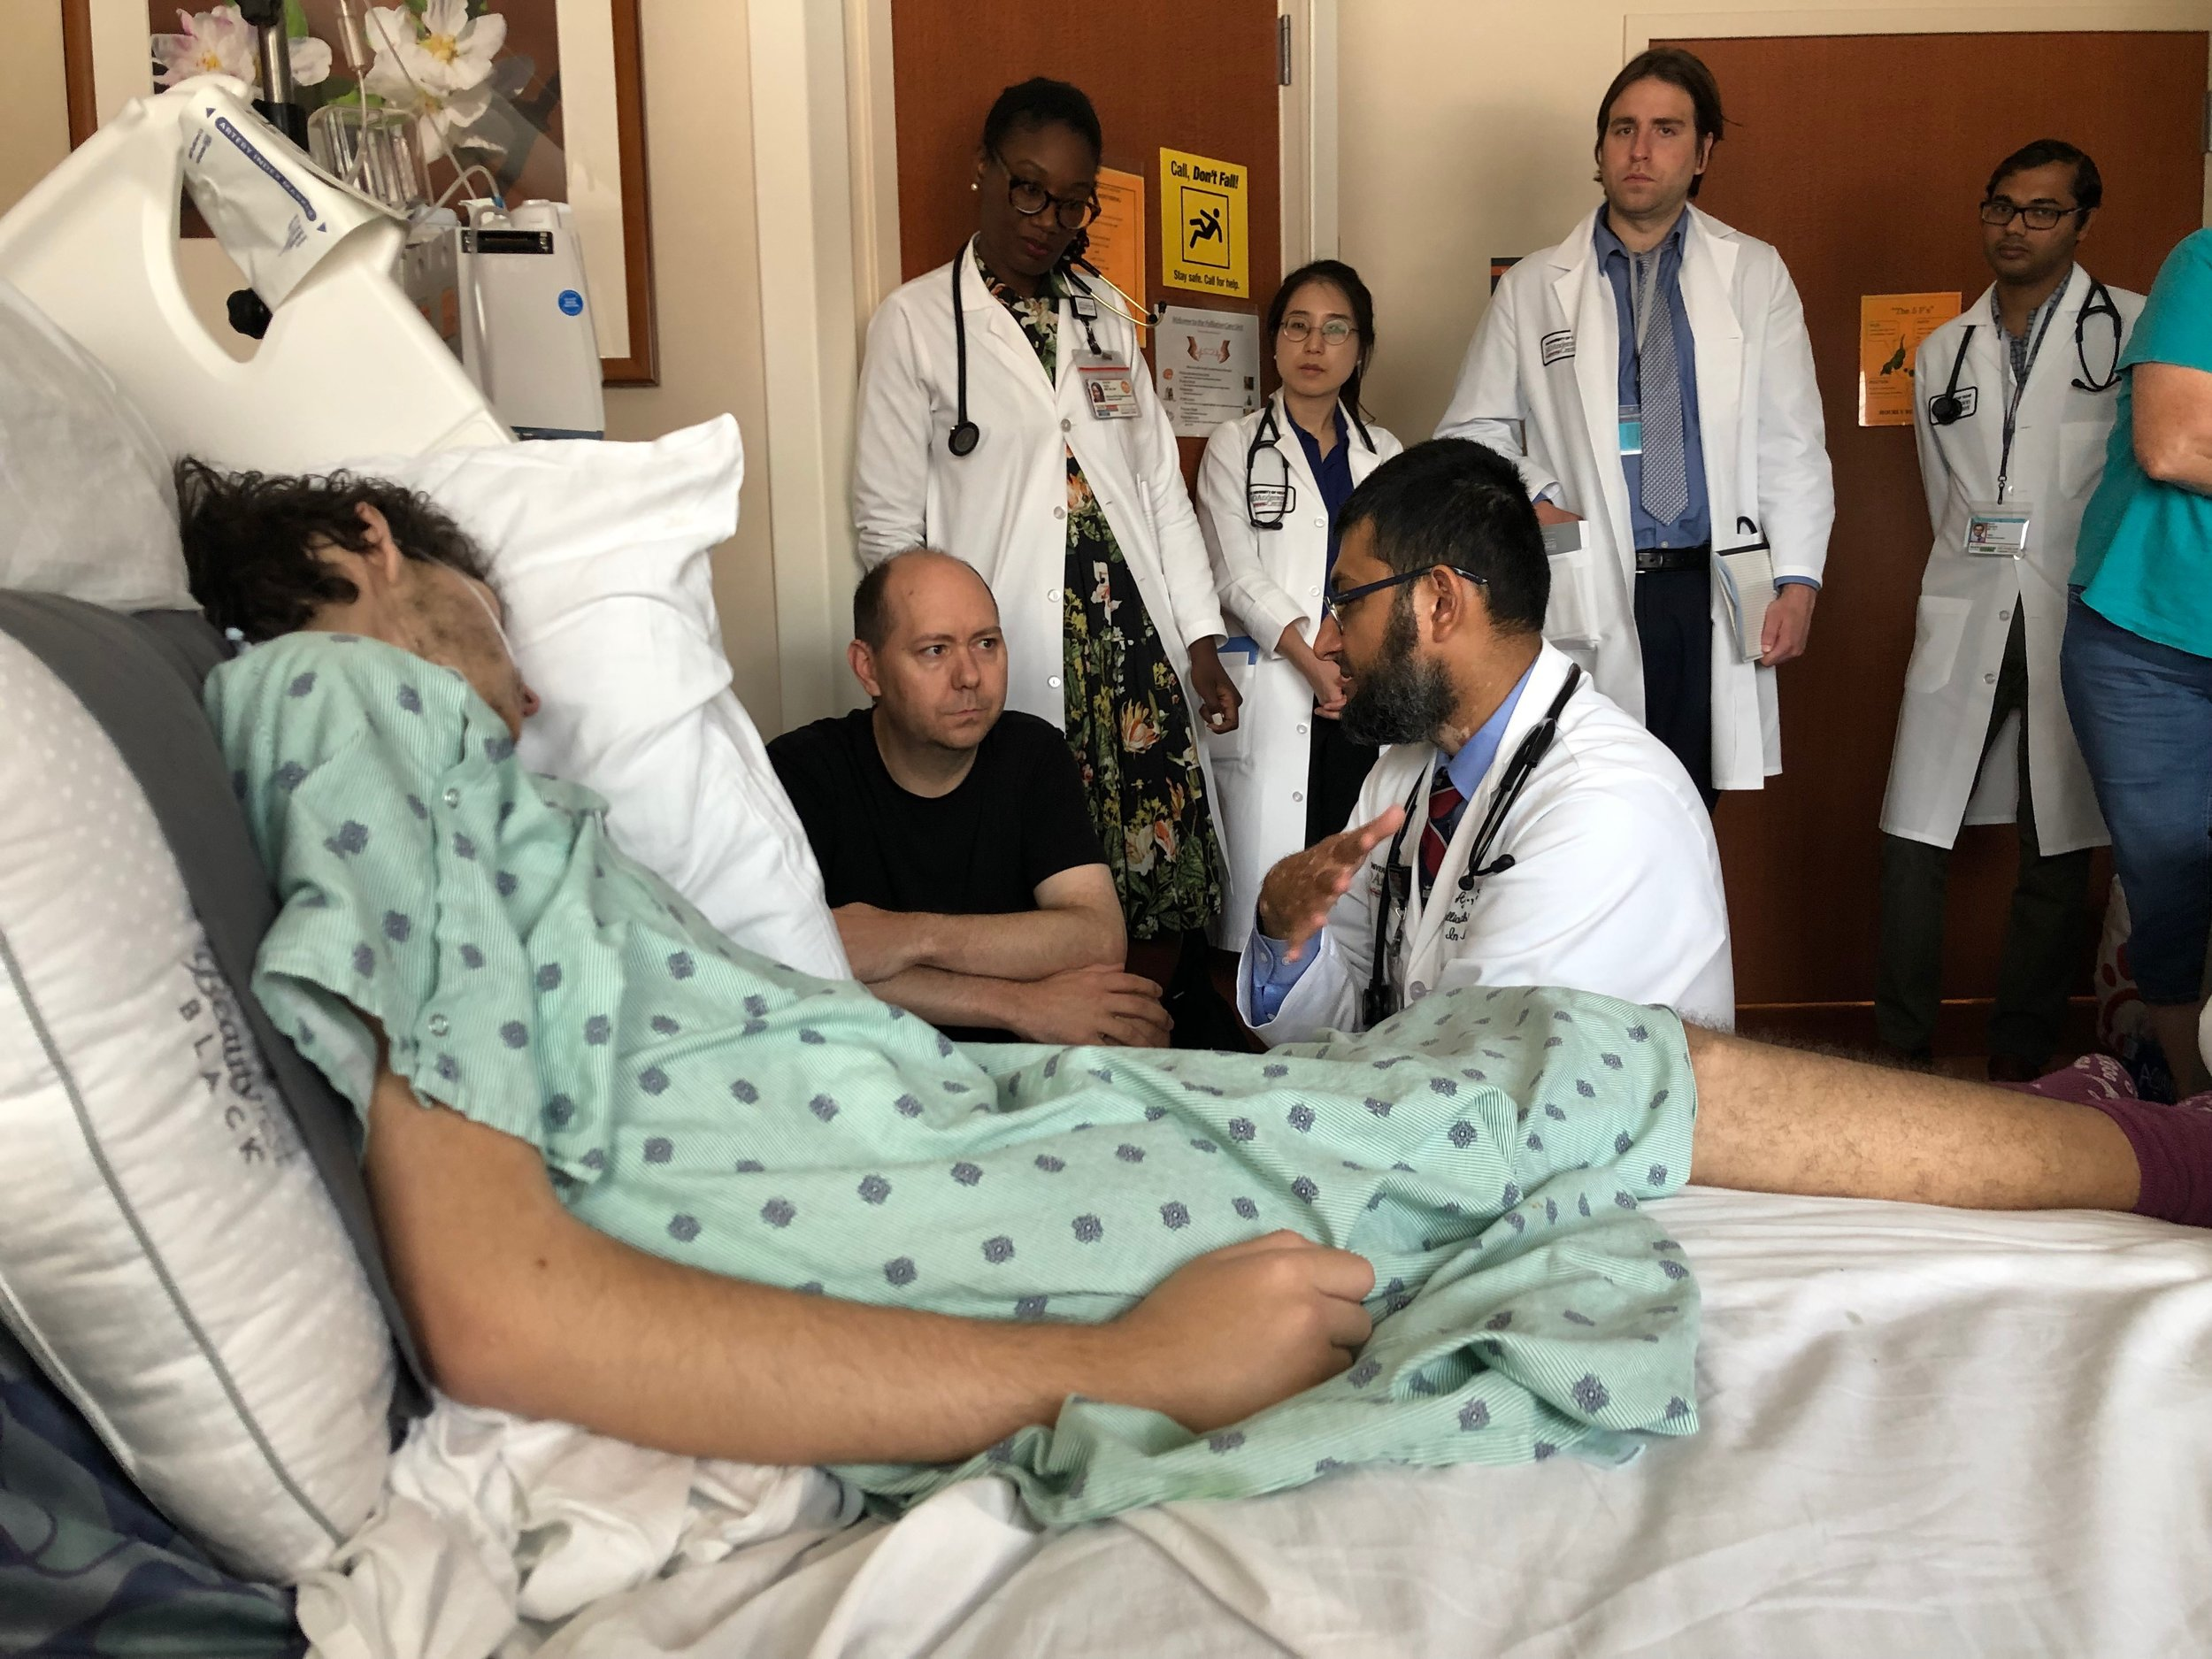 Me in my typical spot, right next to Shawn's bed, with some of Shawn's medical team at MD Anderson.